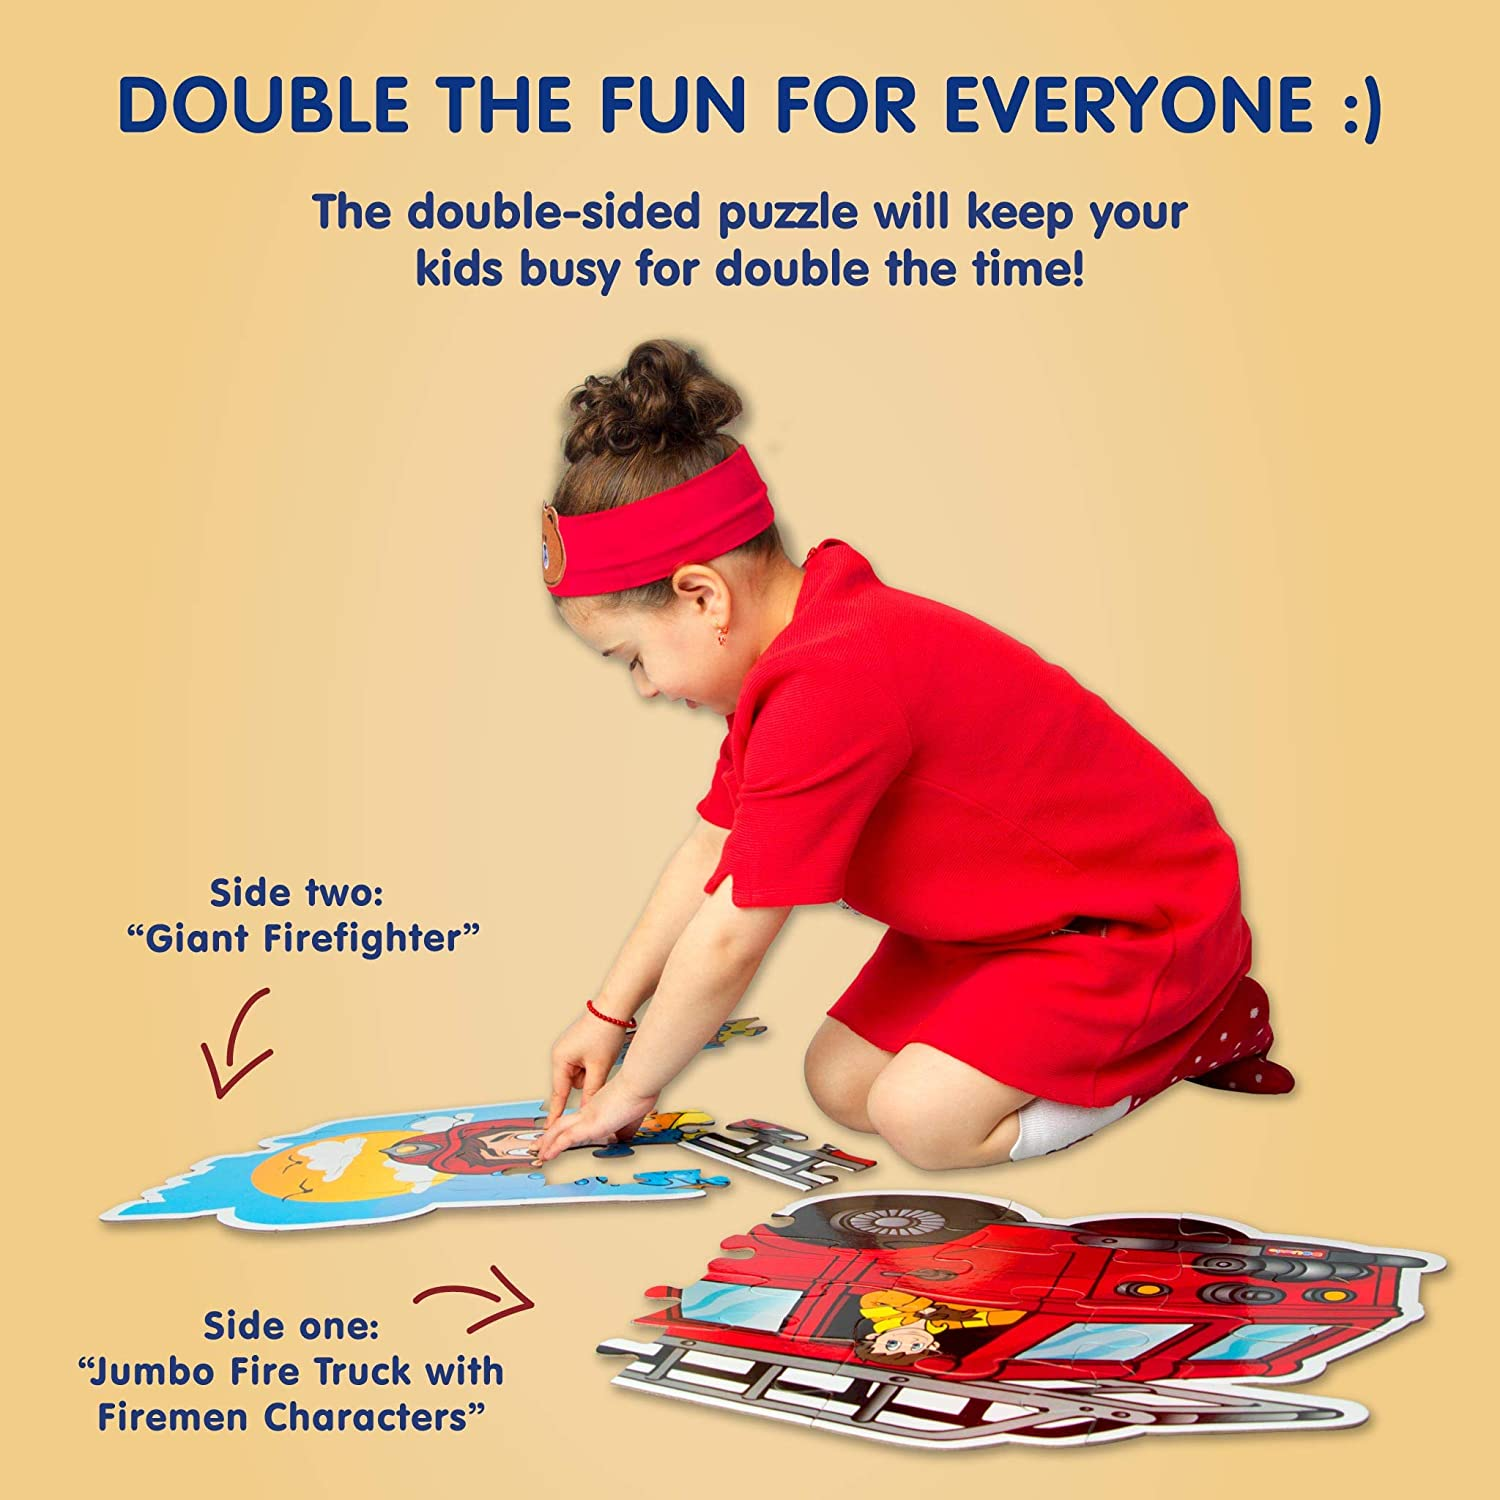 2 Sided Floor Puzzle for Kids Ages 3-5 Birthday Gift for Boys and Girls. Firetruck + Campfire Big Red Fire Engine 24 Extra Large Pieces, 3 Feet Long, Sturdy Cardboard, Fire Truck Shaped